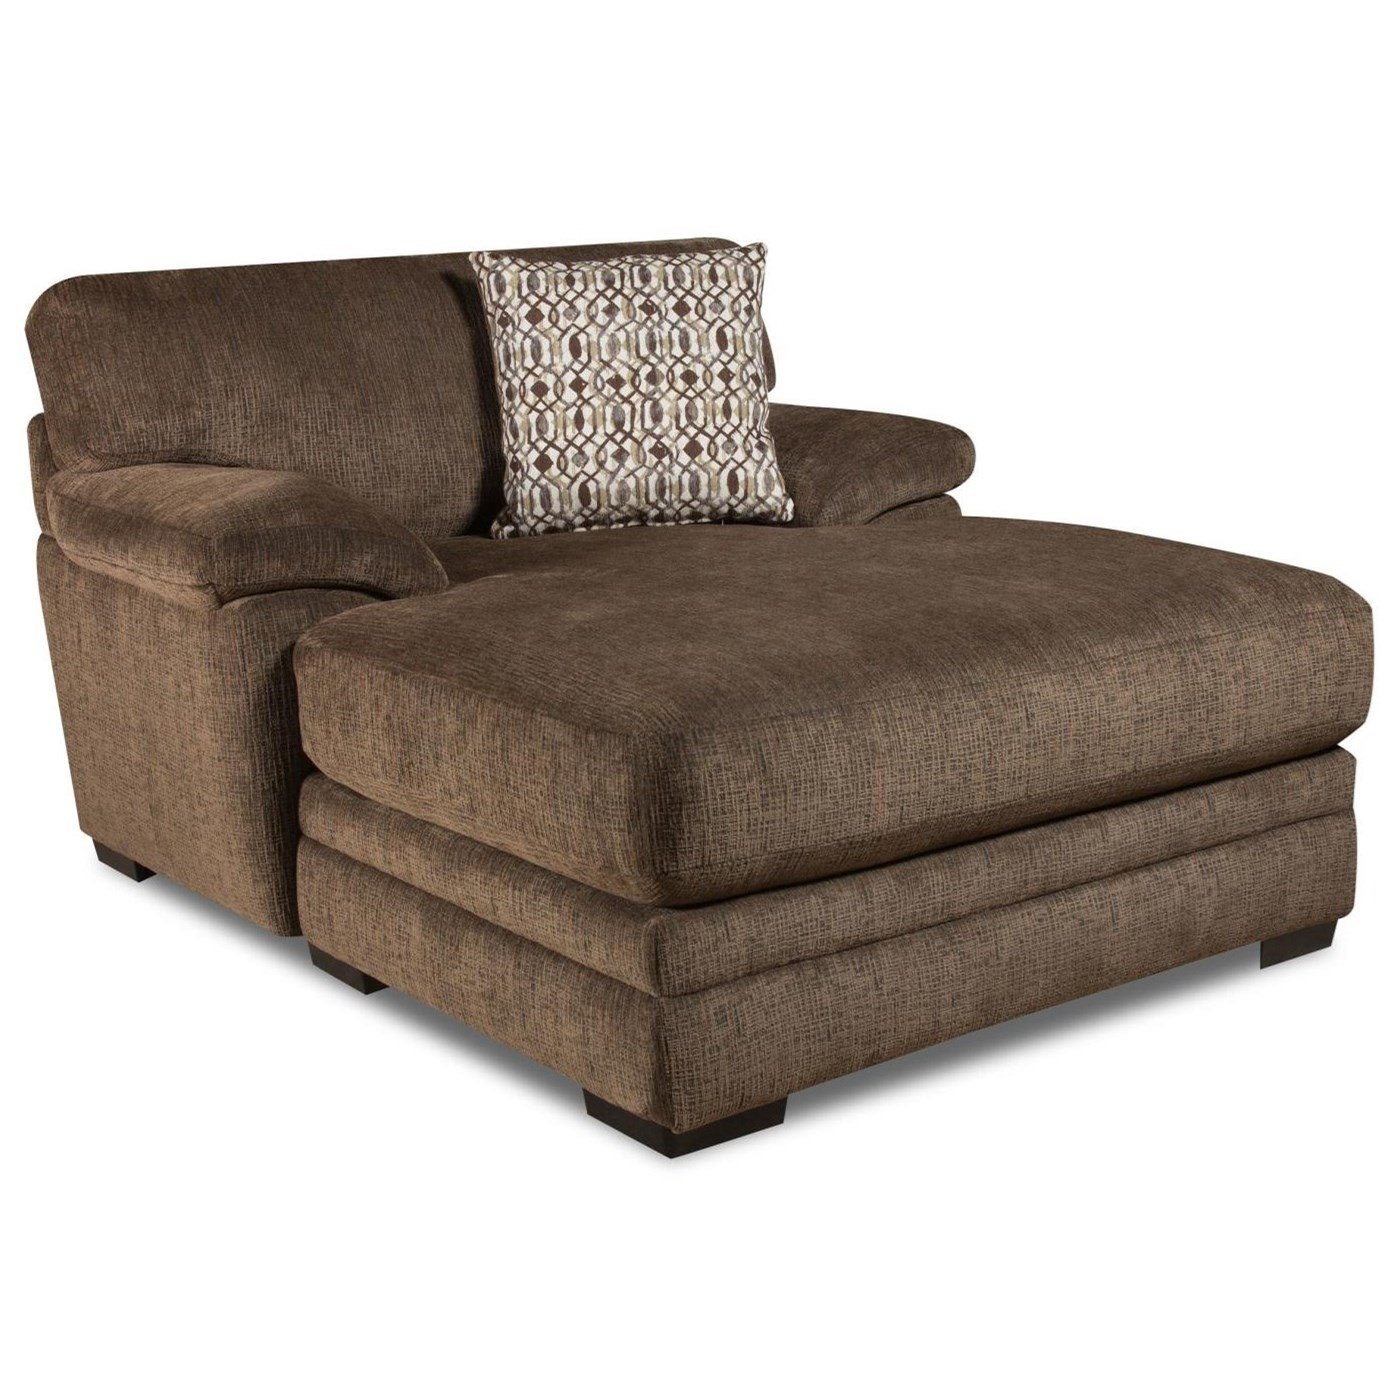 Albany 8662 2 Arm Chaise - Item Number: 8662-48-GENS-24718